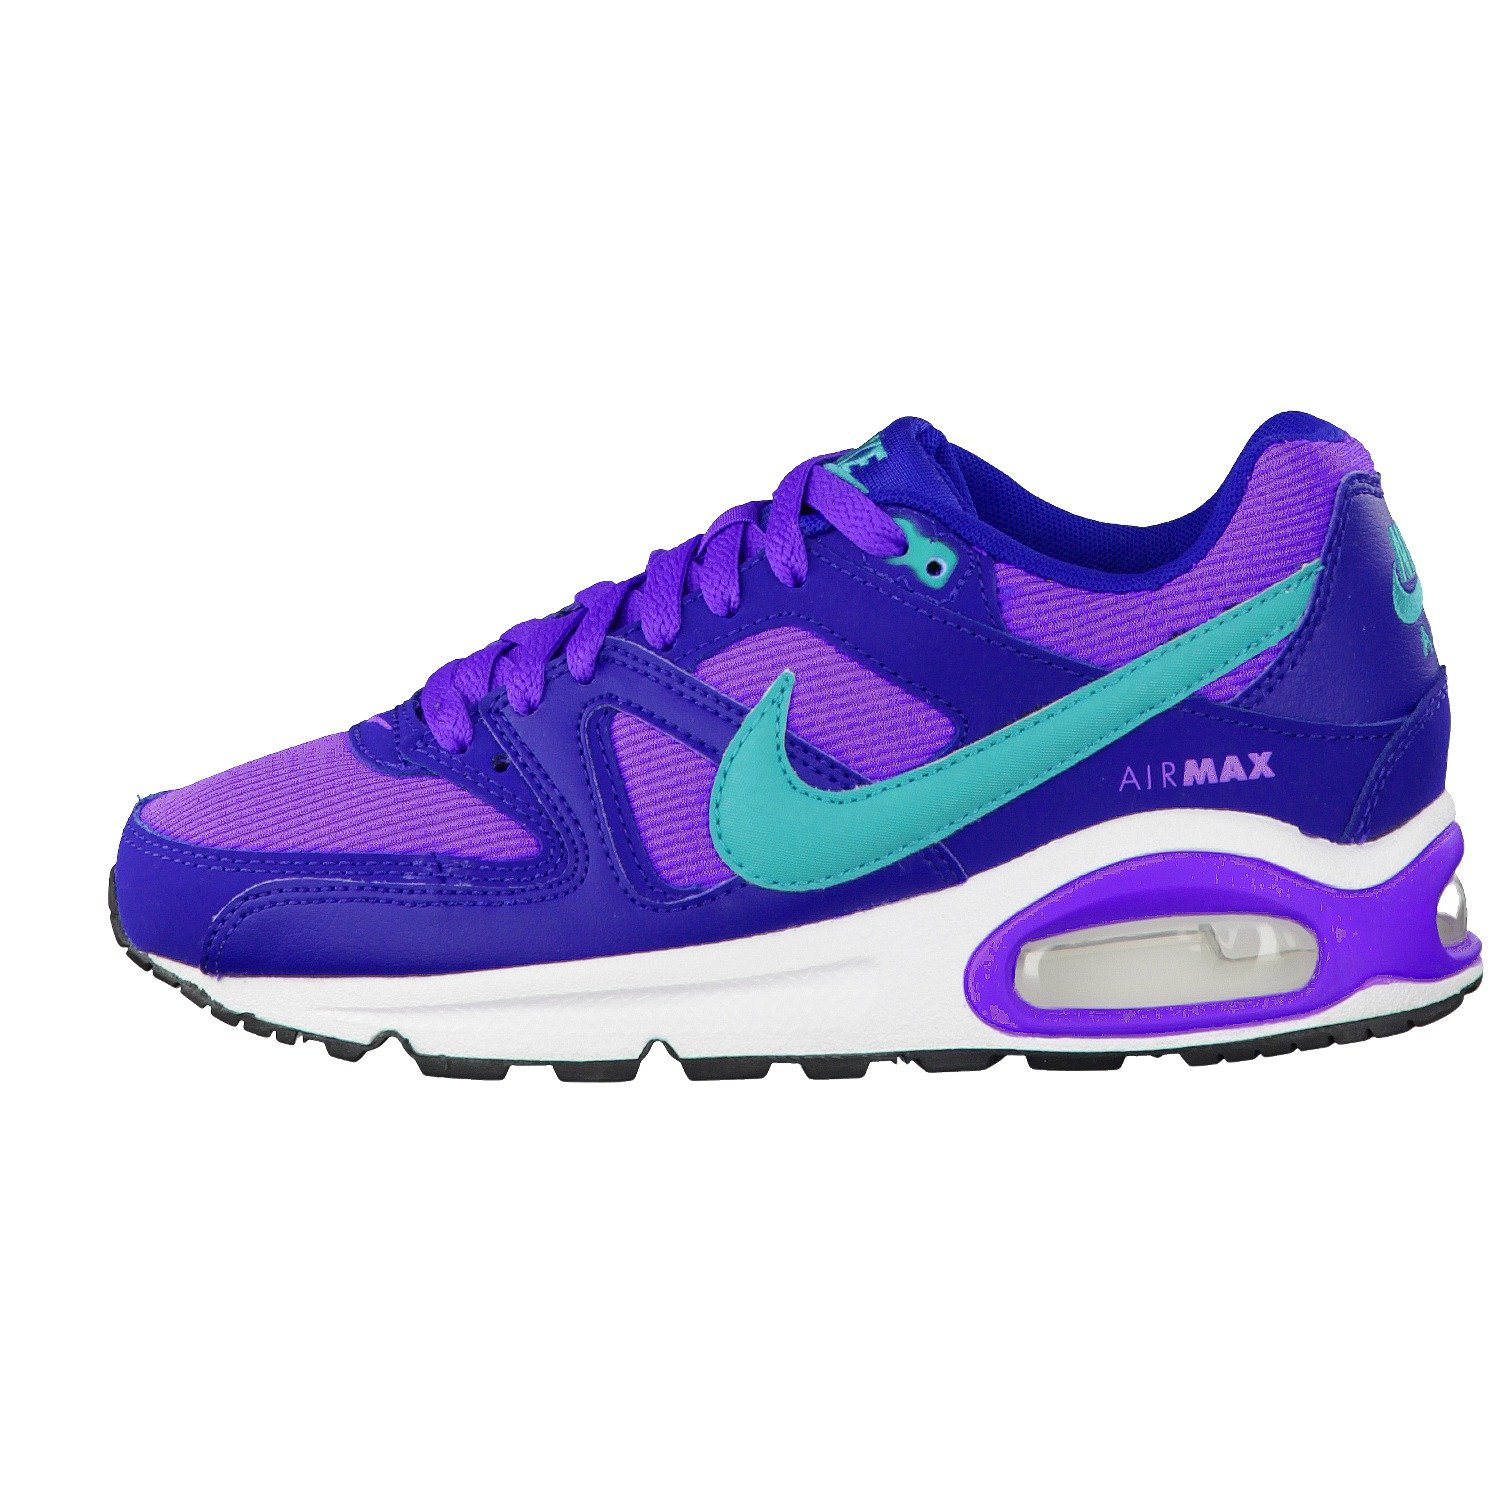 Nike - Air max command purple - Chaussures mode ville - Violet - Taille 38.5